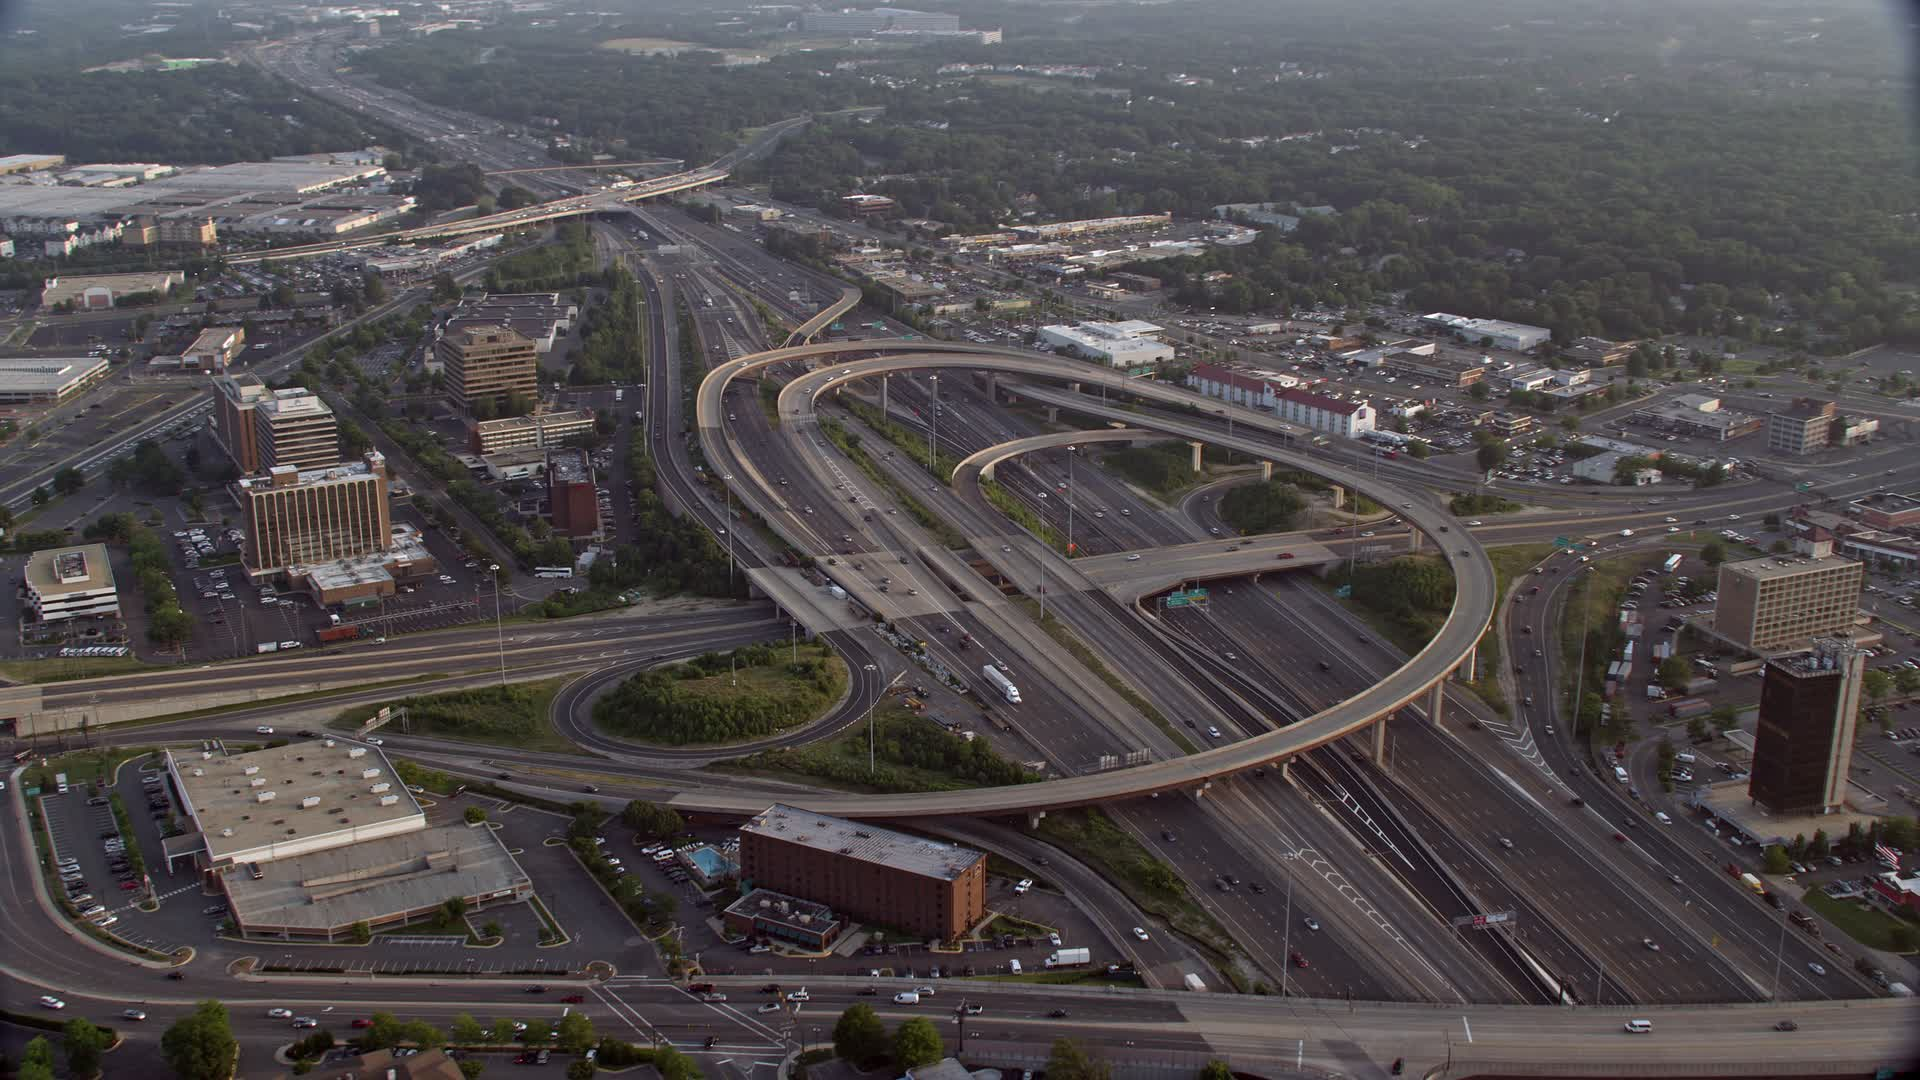 5K stock footage aerial video of Interstate 95 Interchange, Springfield,  Virginia, sunset Aerial Stock Footage AX76_022 | Axiom Images